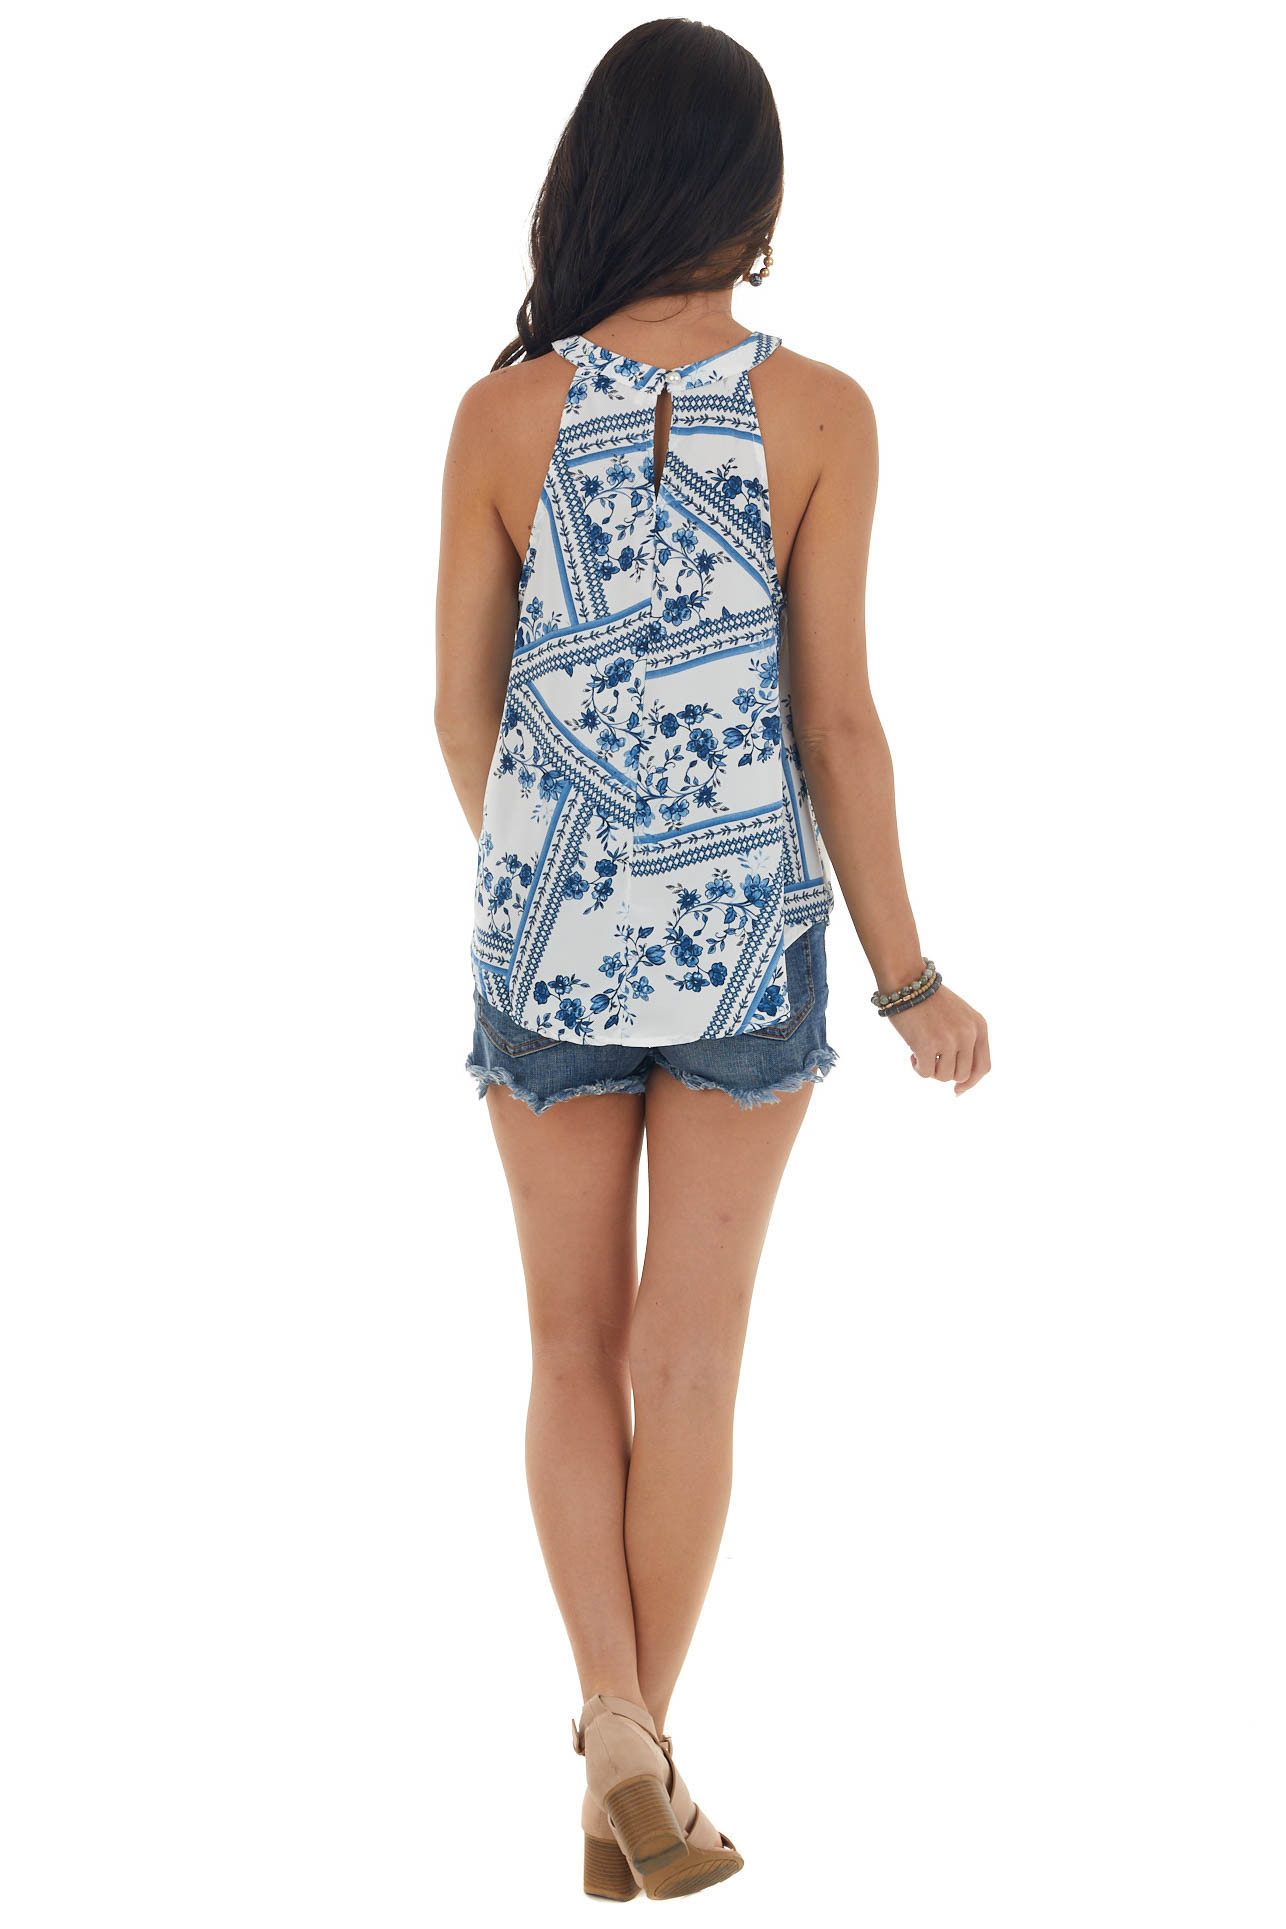 Catalina and Pearl Floral Halter Neck Top